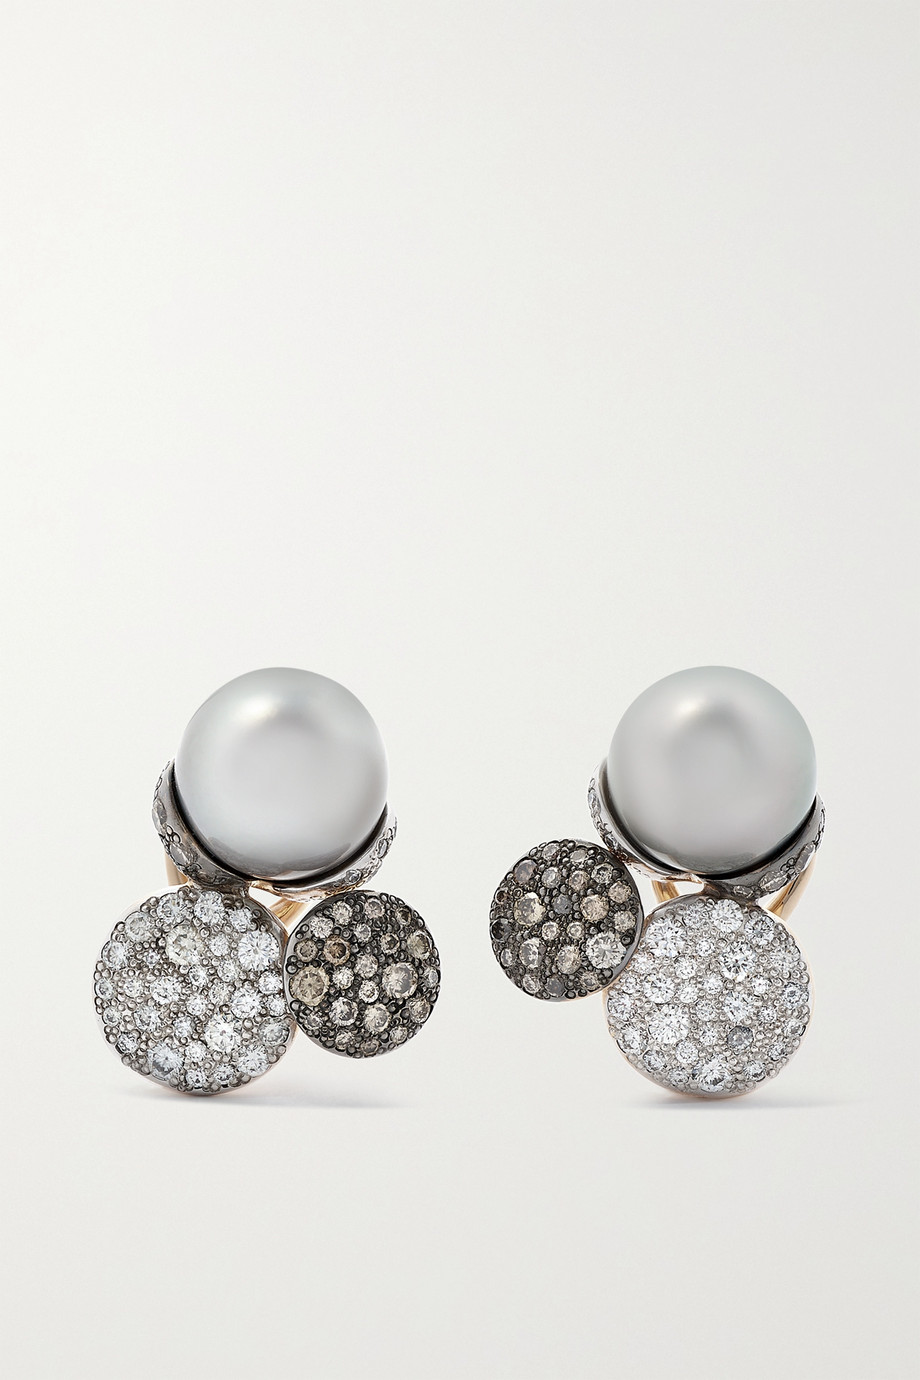 POMELLATO Sabbia 18-karat rose gold, pearl and diamond earrings